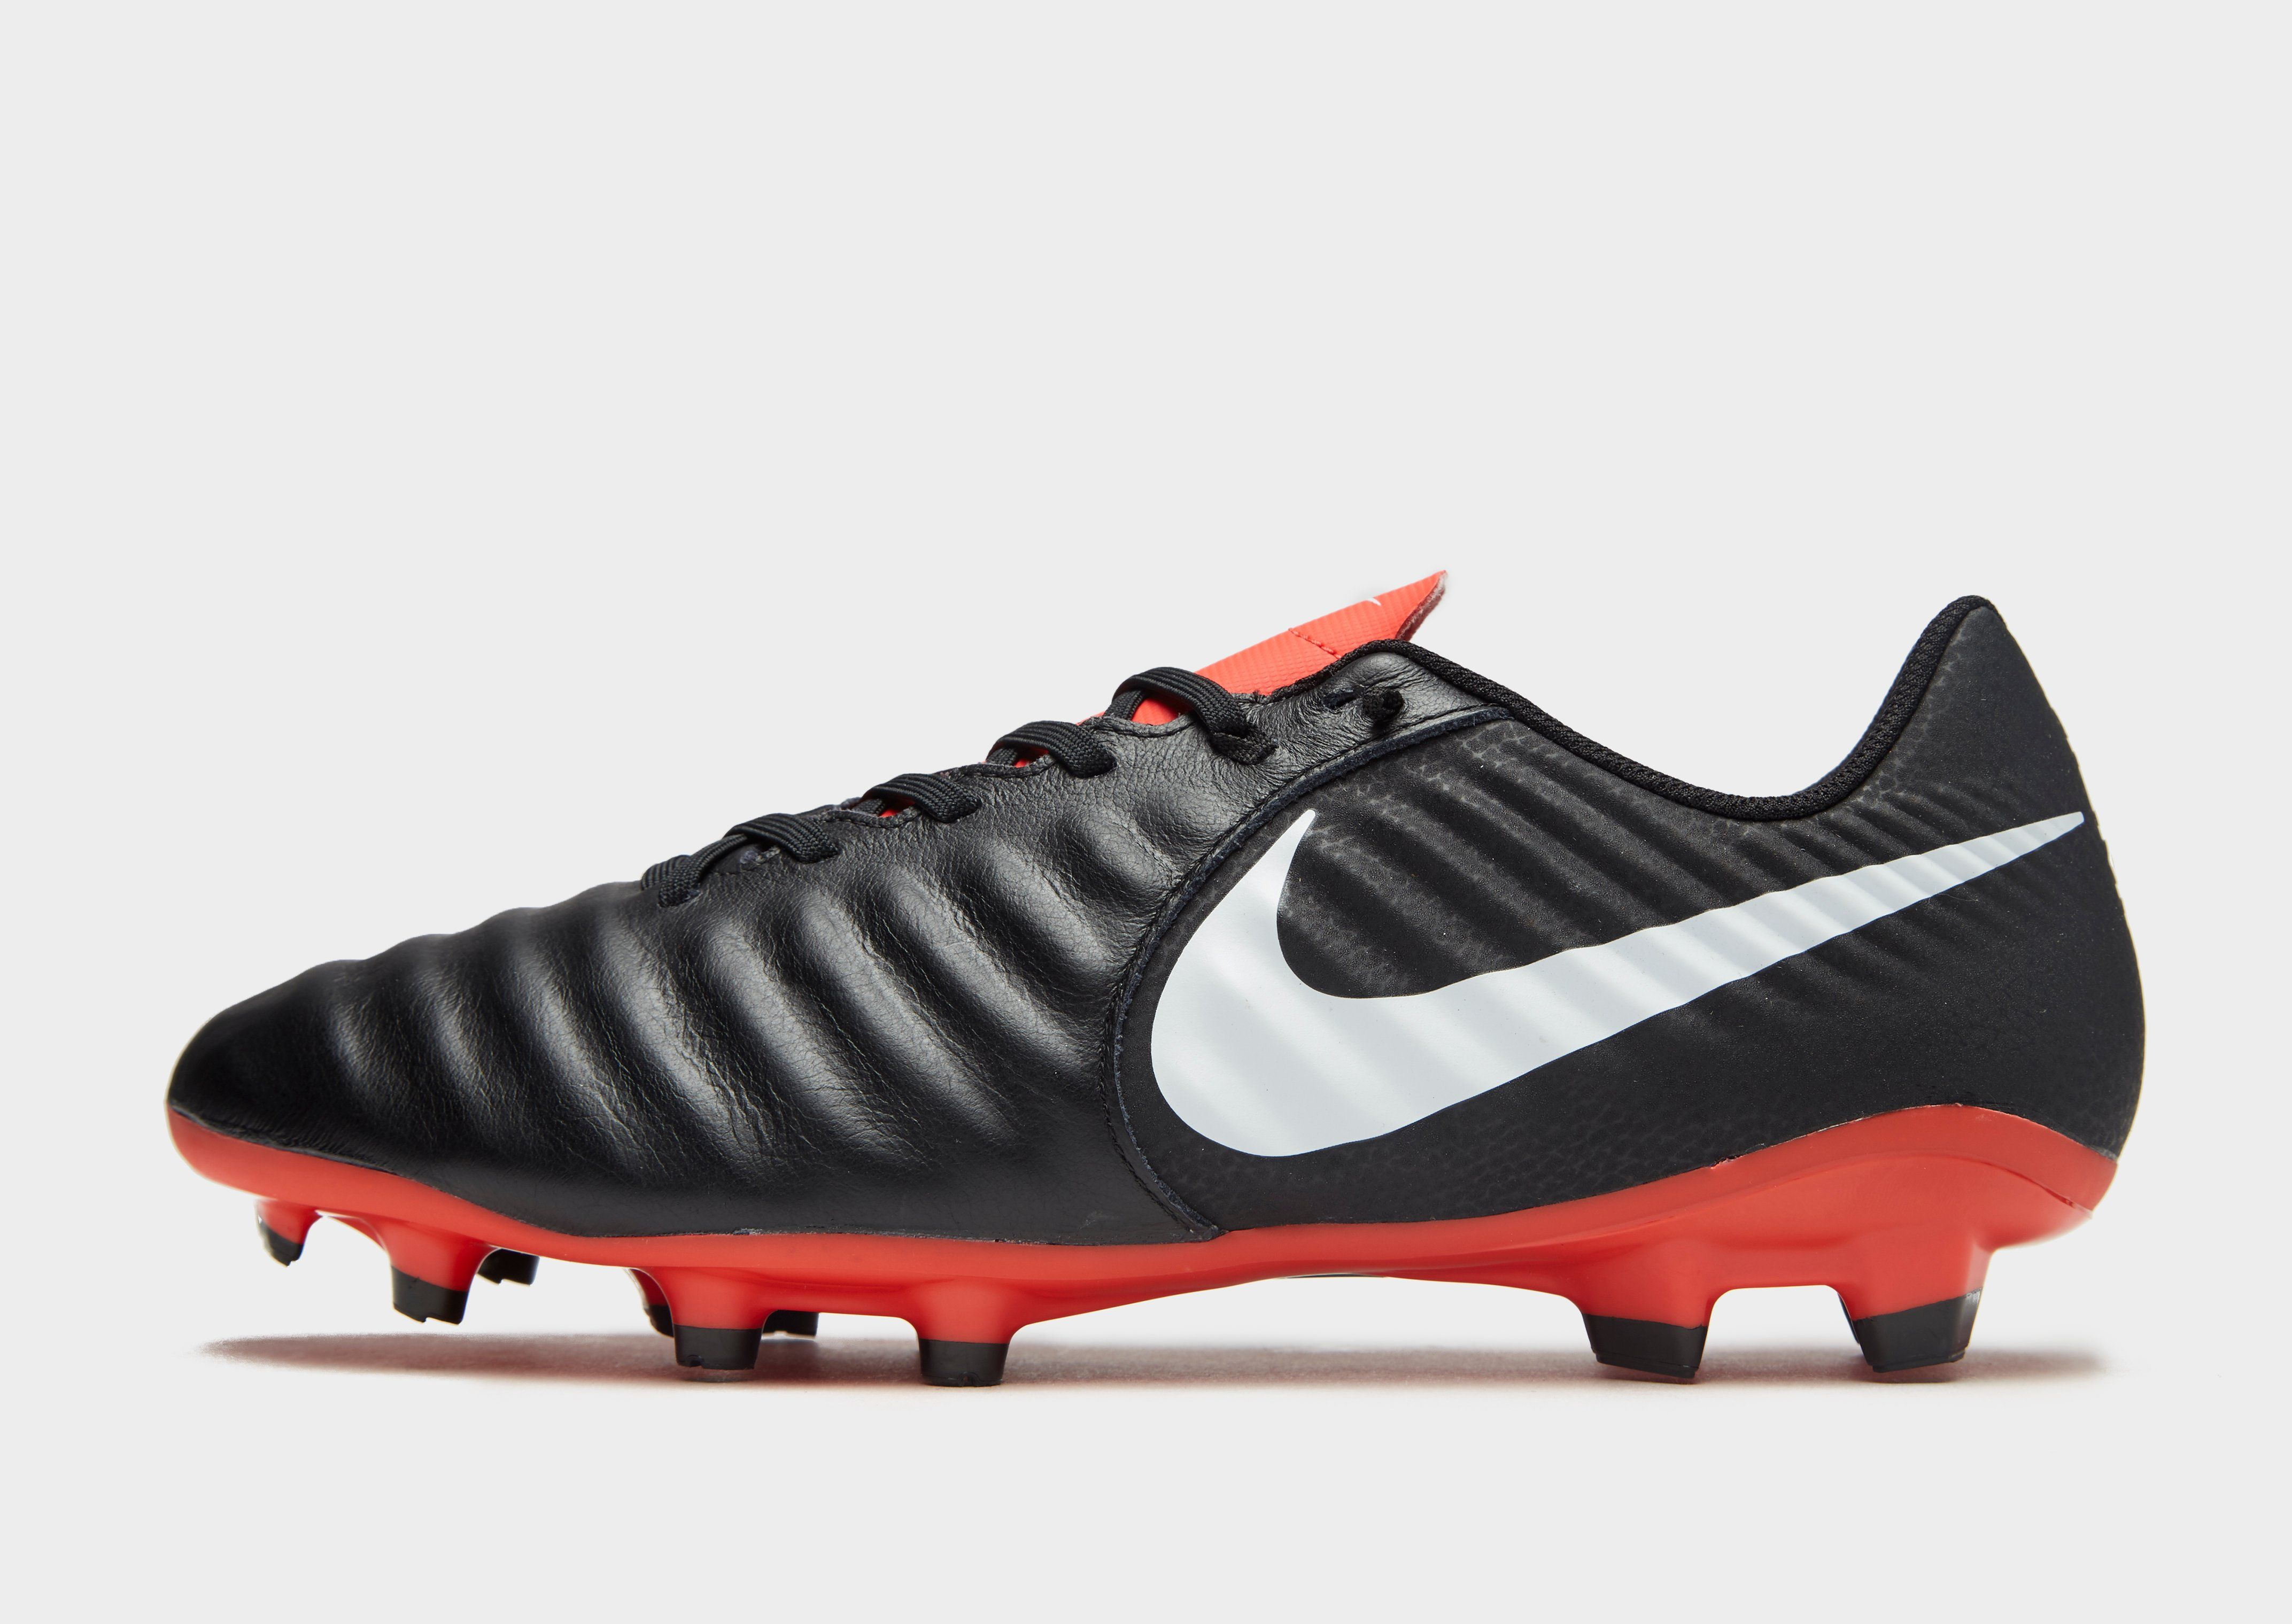 reputable site b6767 5fea0 NIKE Nike Tiempo Legend VII Academy Firm-Ground Football Boot   JD Sports